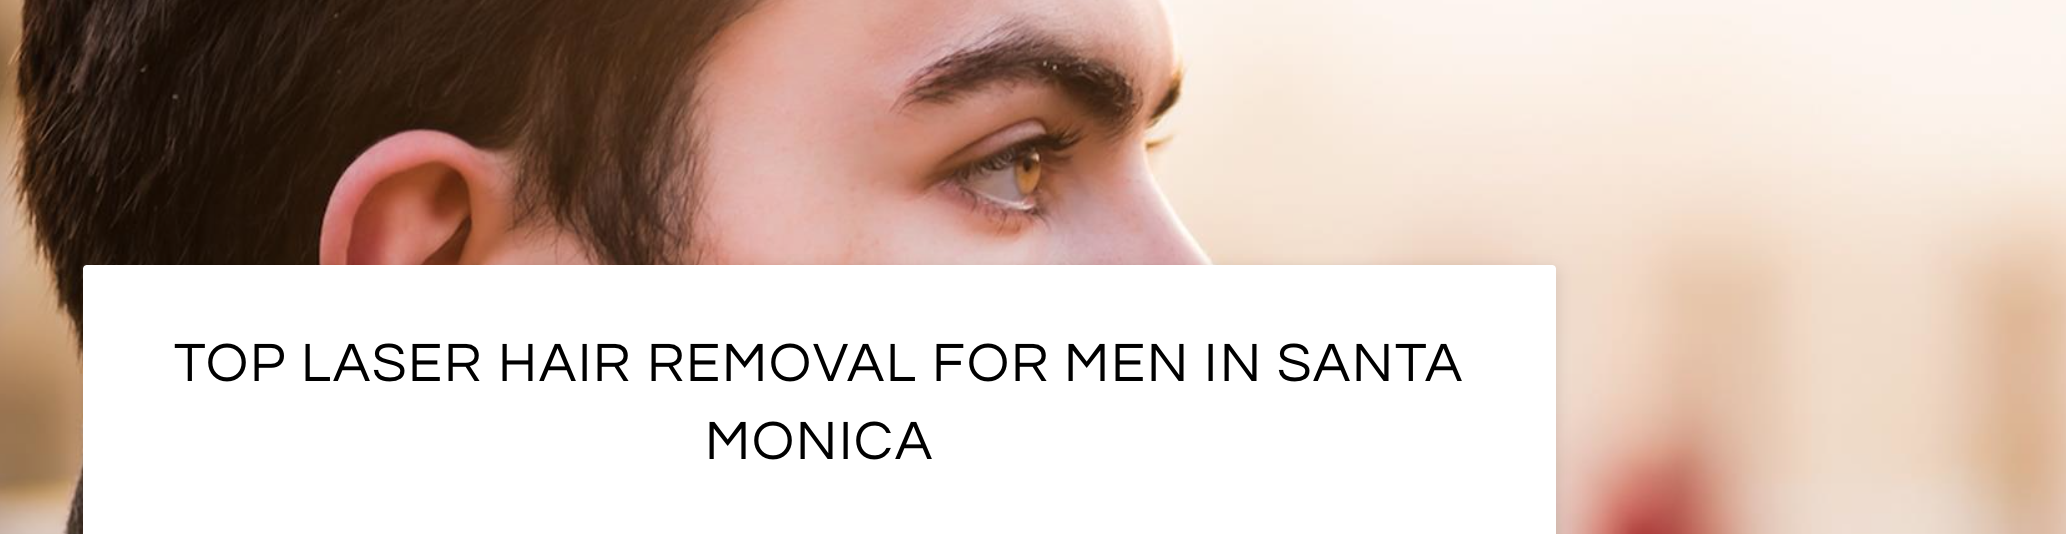 Laser hair removal for men in Santa Monica on Montana Avenue at Kare Plastic Surgery